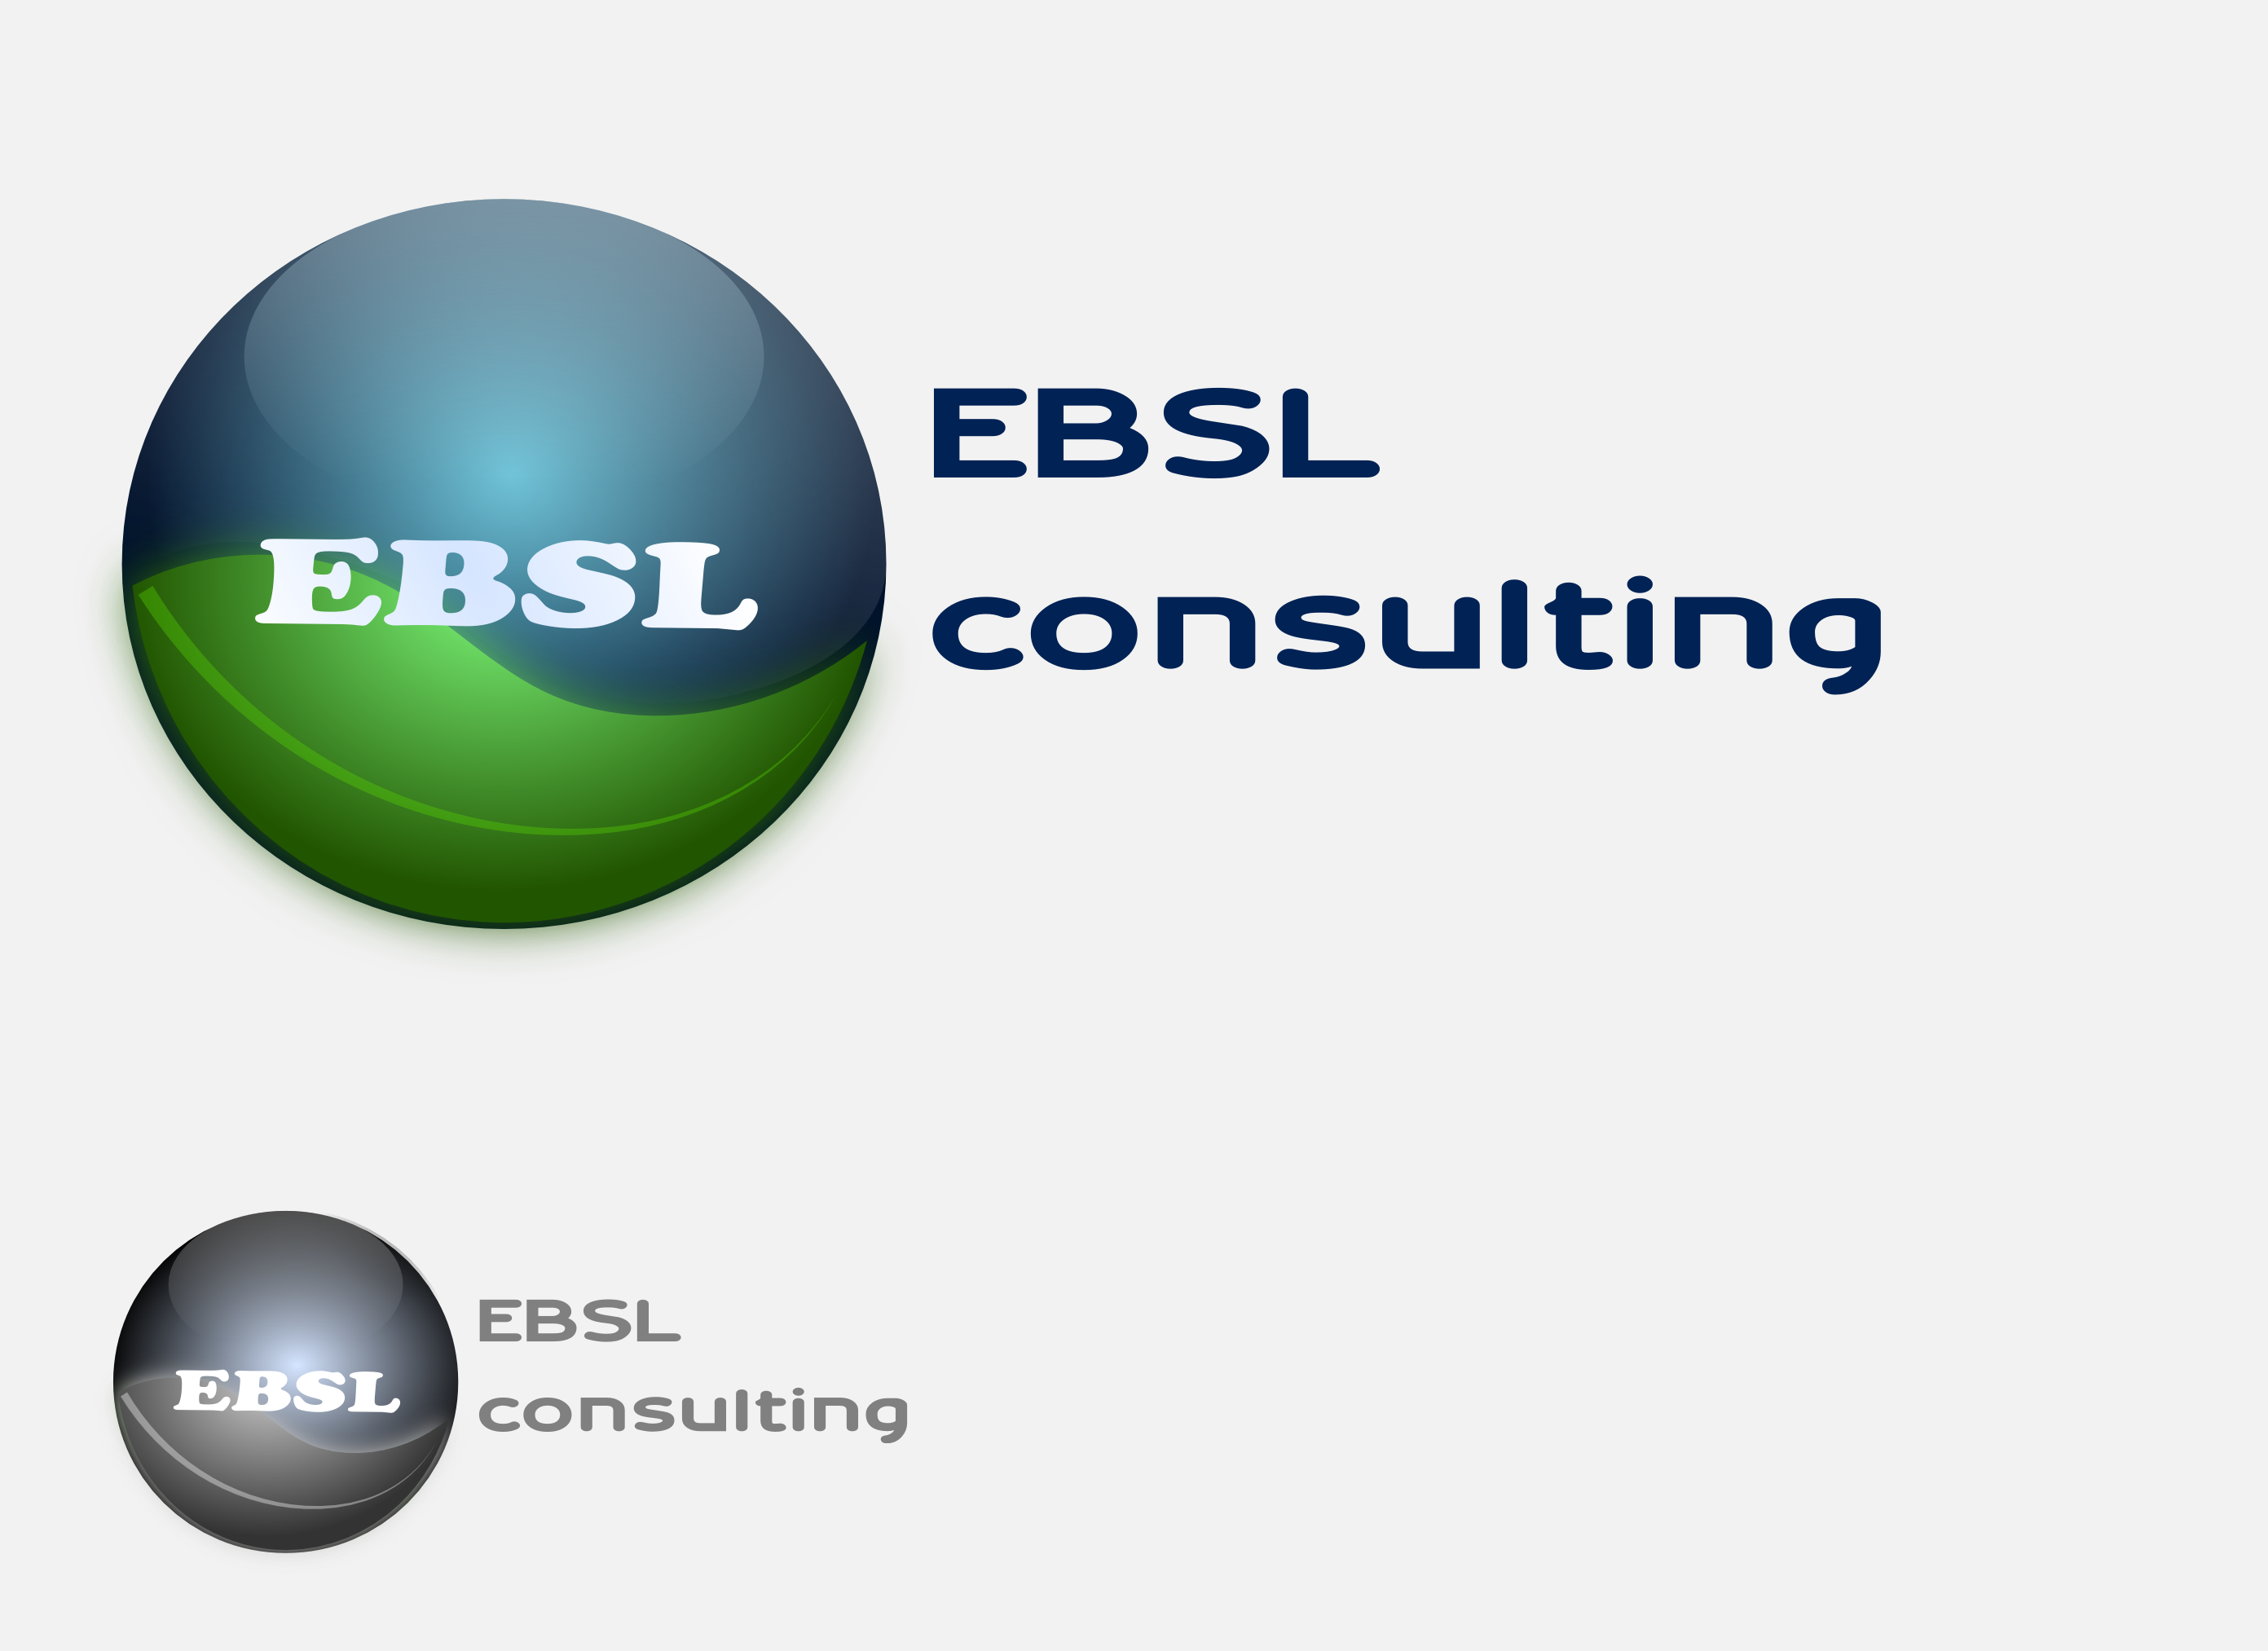 Logo Design by Arindam Khanda - Entry No. 44 in the Logo Design Contest EBSL Consulting Logo Design.